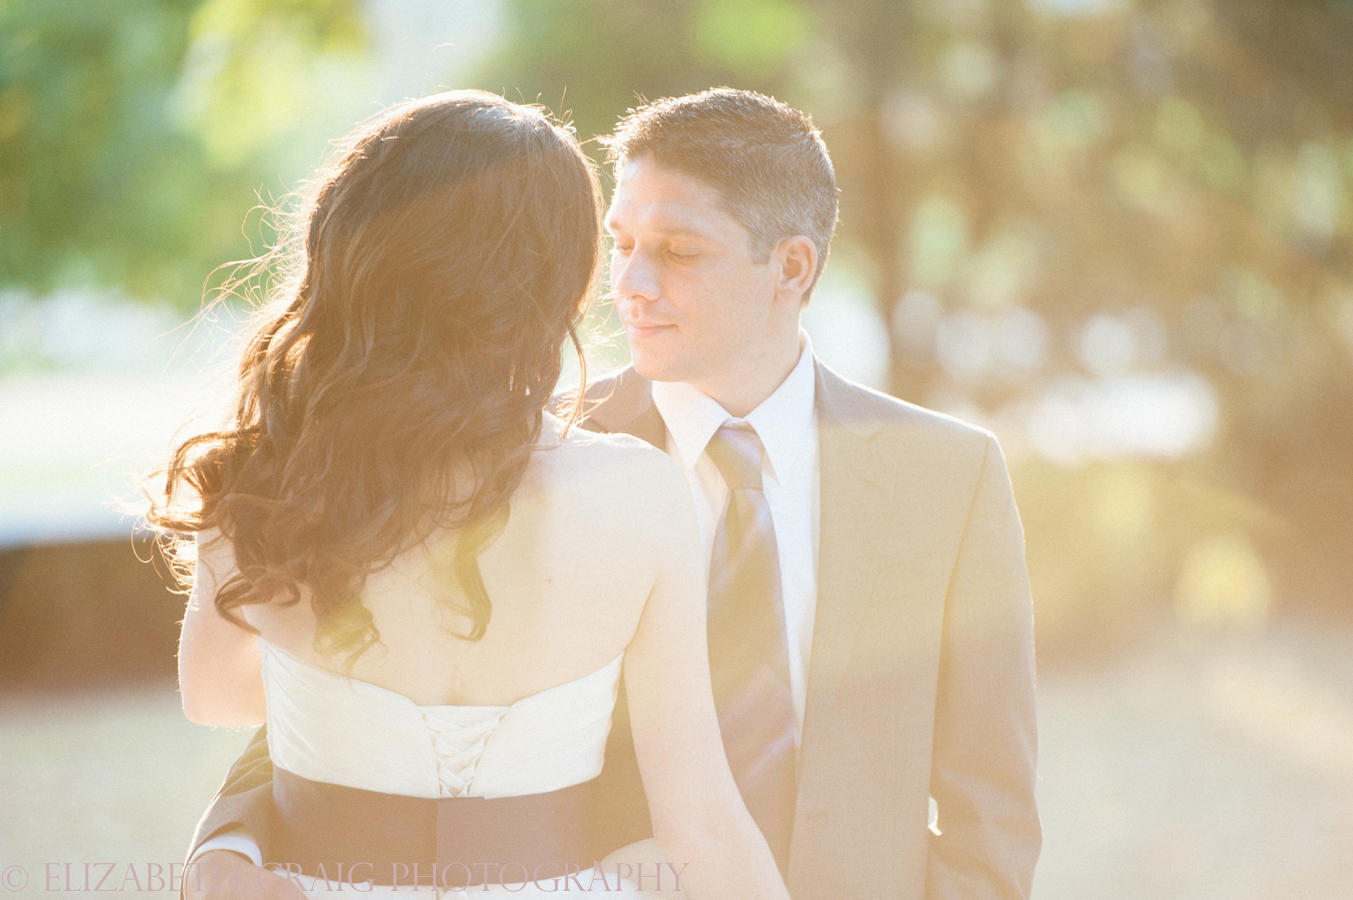 Romantic Wedding Photos | Elizabeth Craig Photography-019